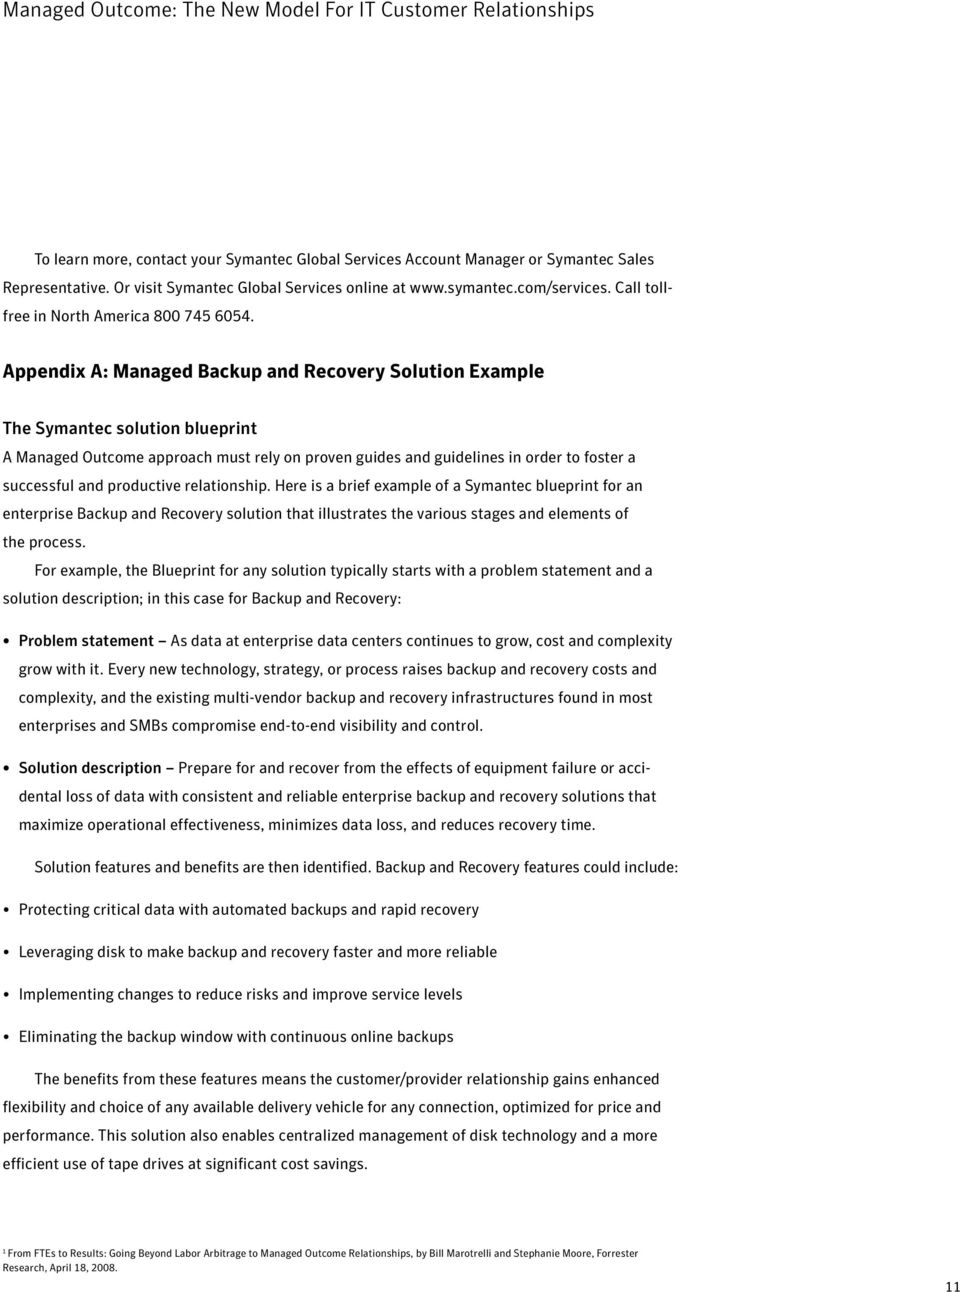 Appendix A: Managed Backup and Recovery Solution Example The Symantec solution blueprint A Managed Outcome approach must rely on proven guides and guidelines in order to foster a successful and